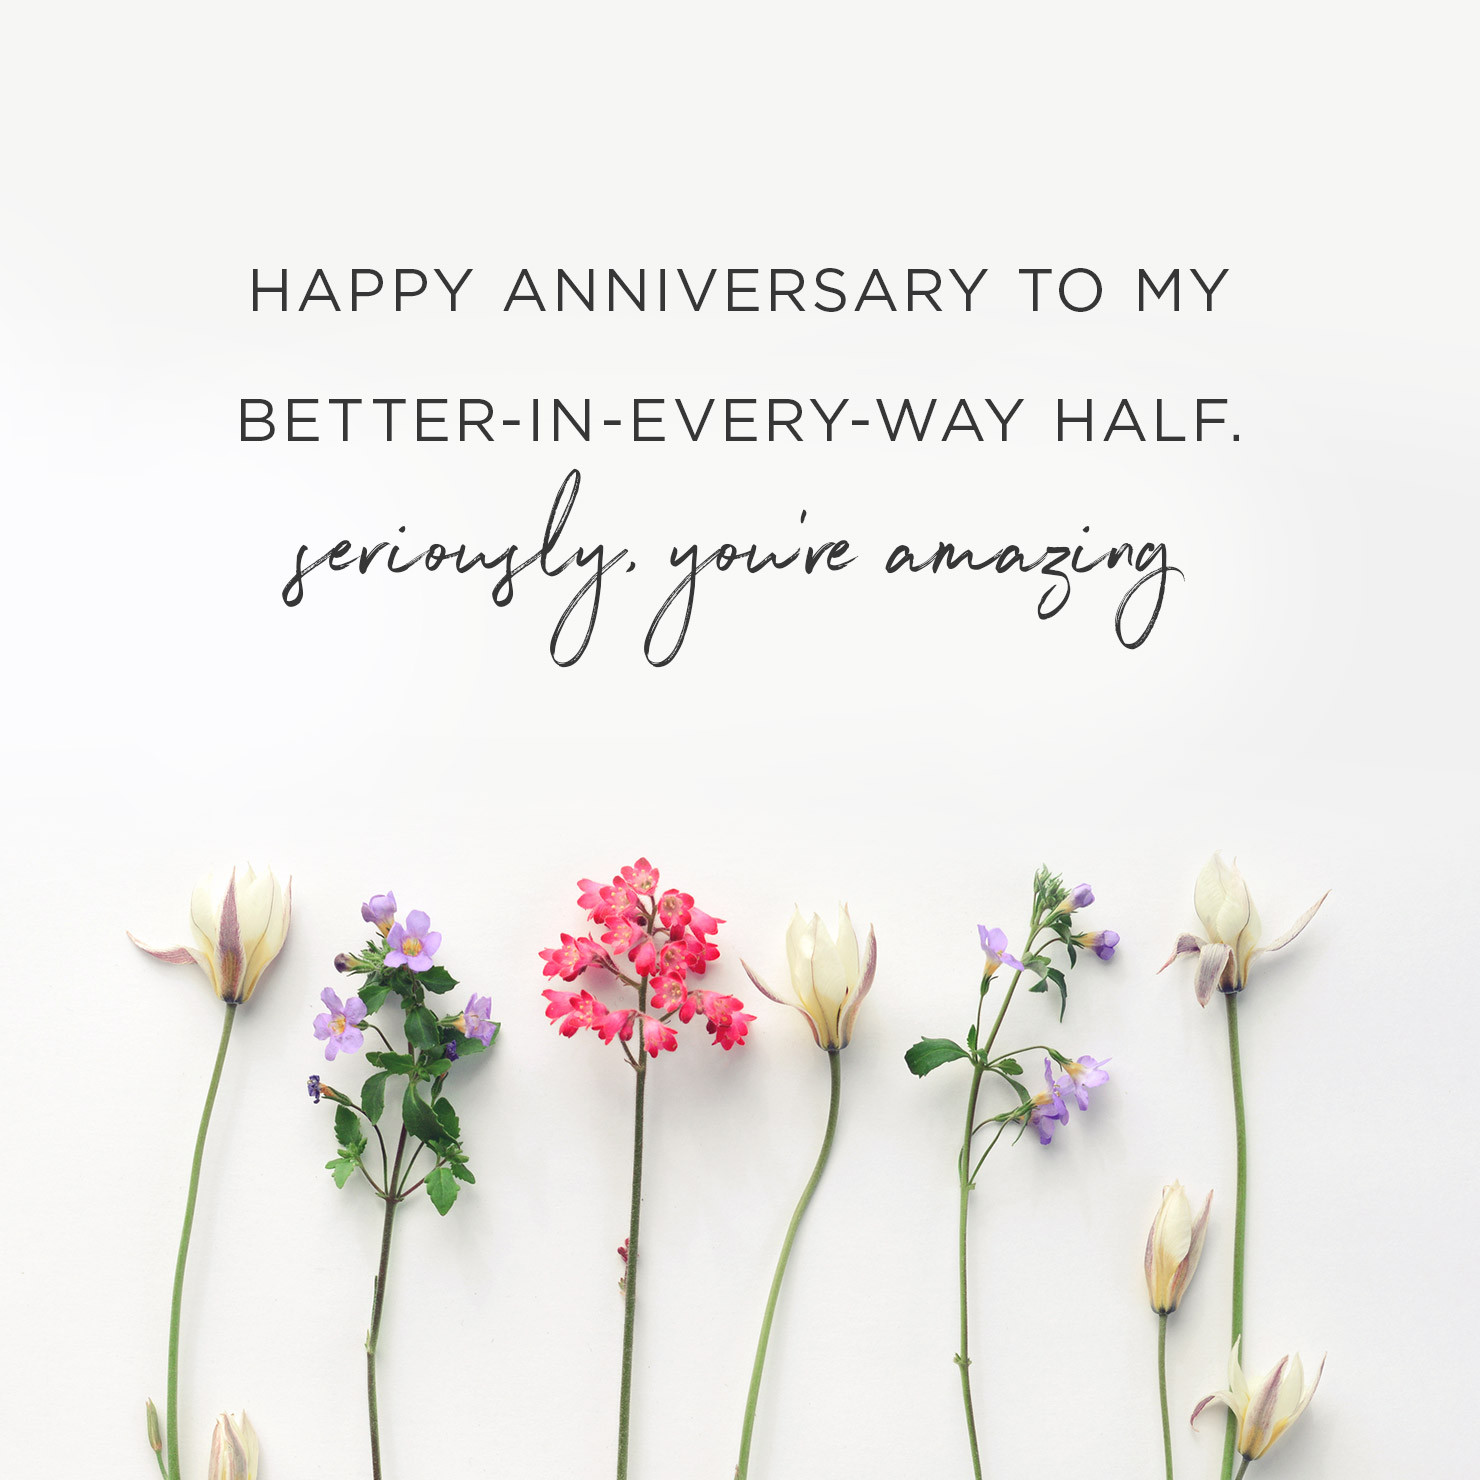 80 heartfelt happy anniversary messages with images shutterfly